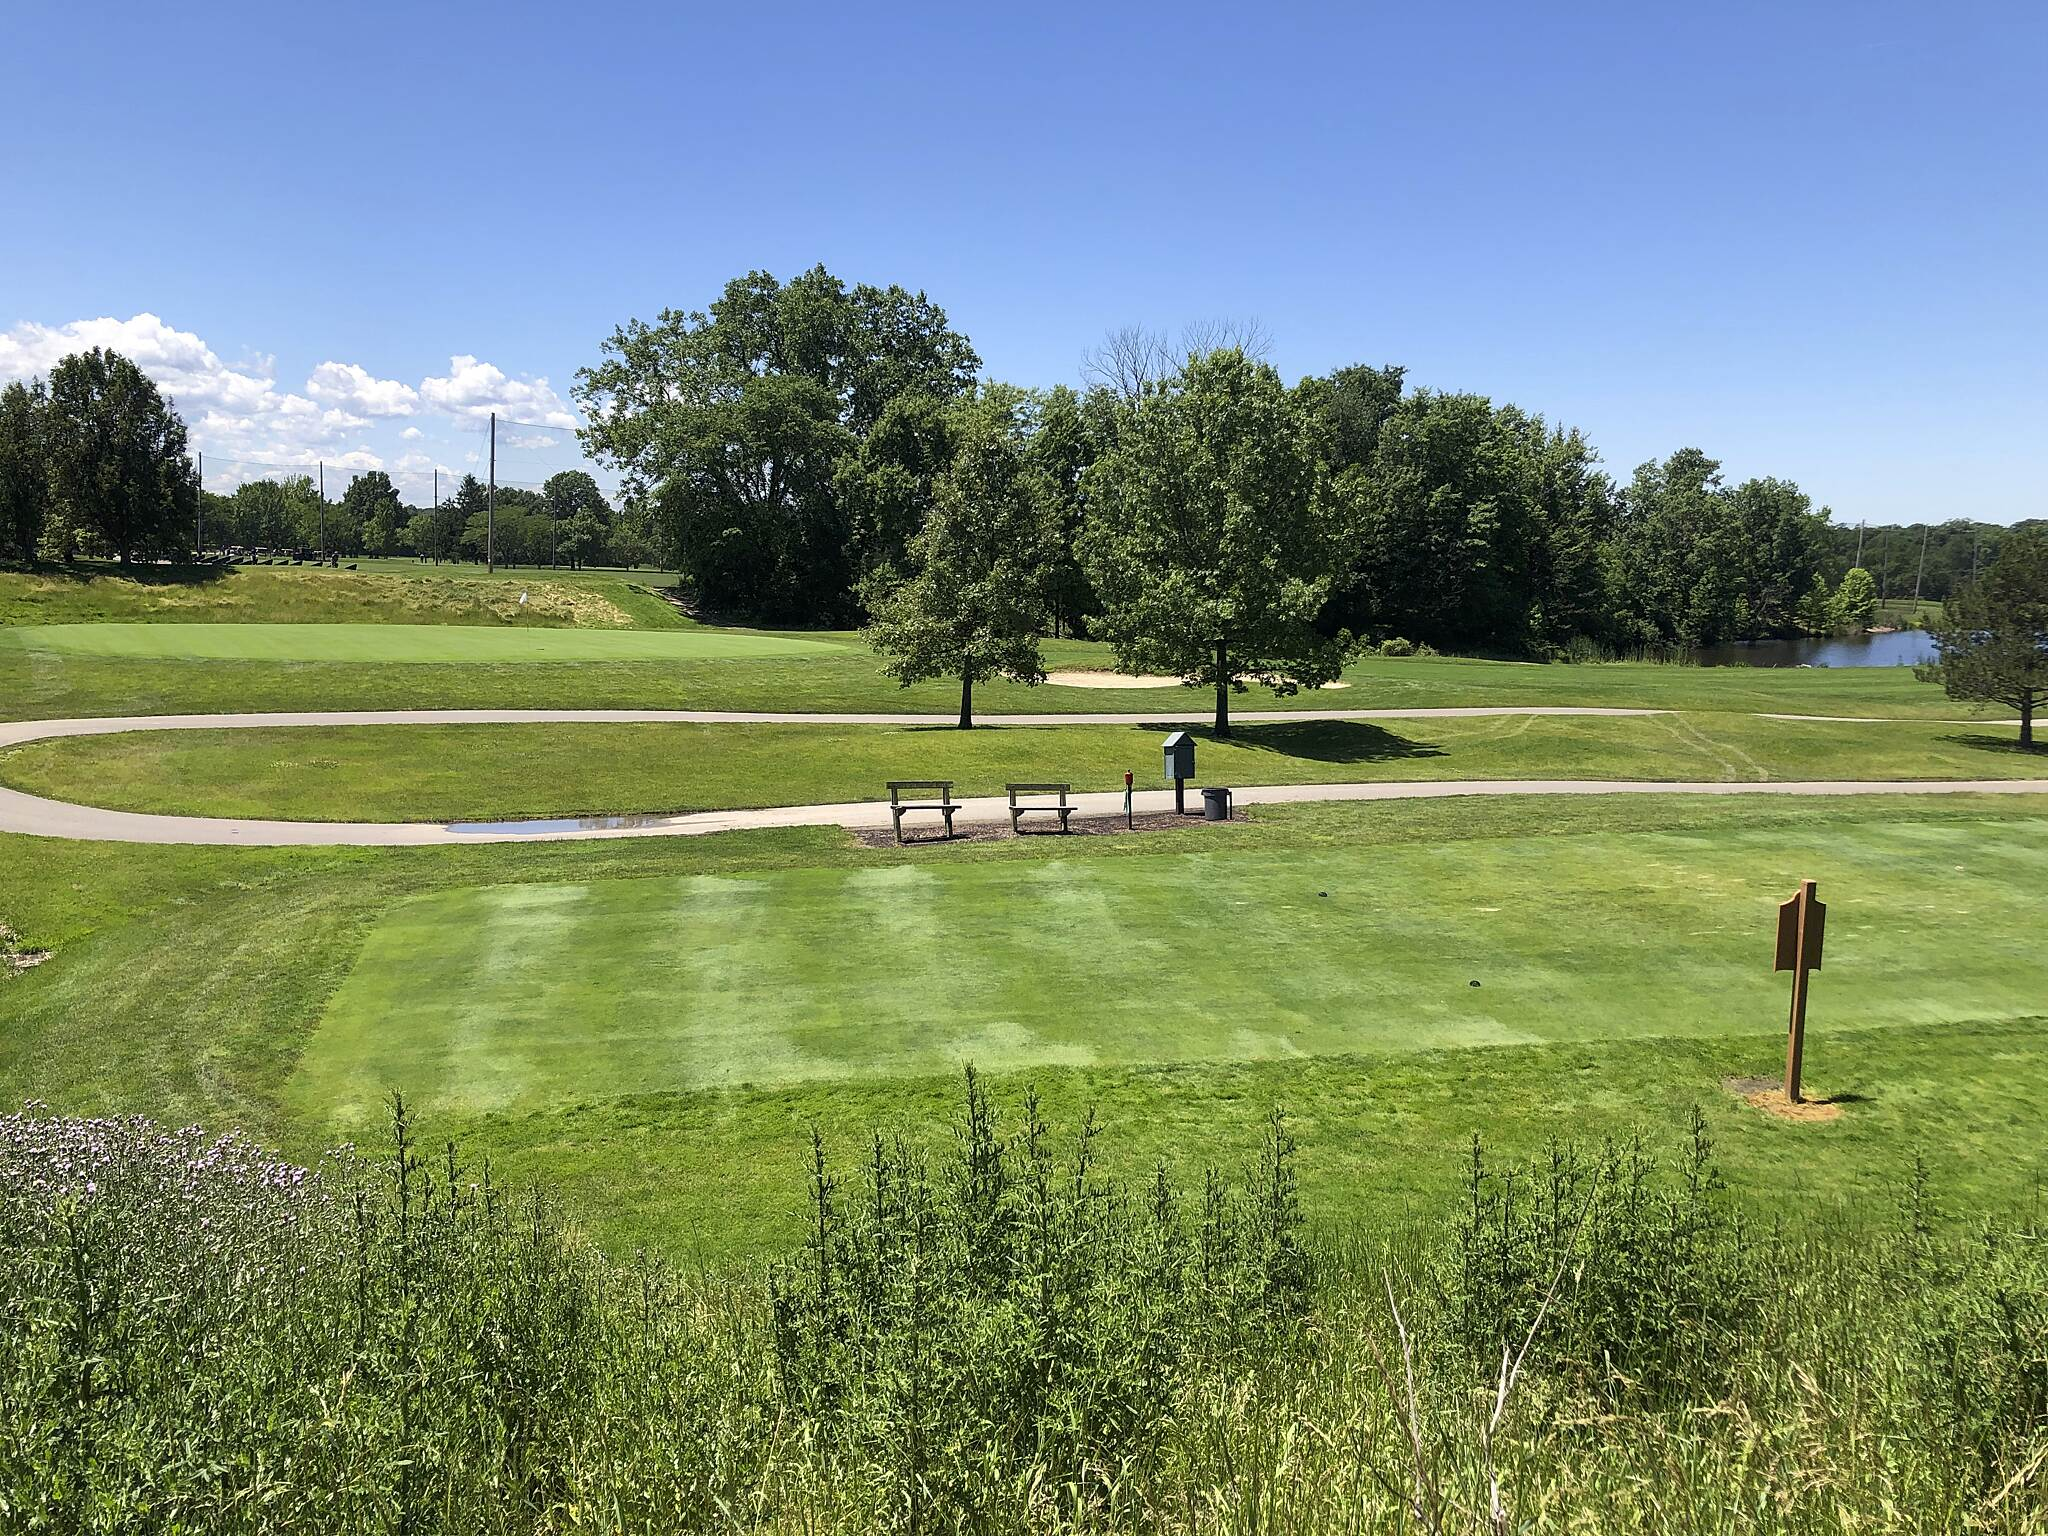 Bedford Reservation All Purpose Trail Tee It Up This is the 3rd Hole Green and the 4th Hole Tee Box of the Cleveland Metroparks Shawnee Hills Golf Course in the Bedford Reservation.  June 2019.